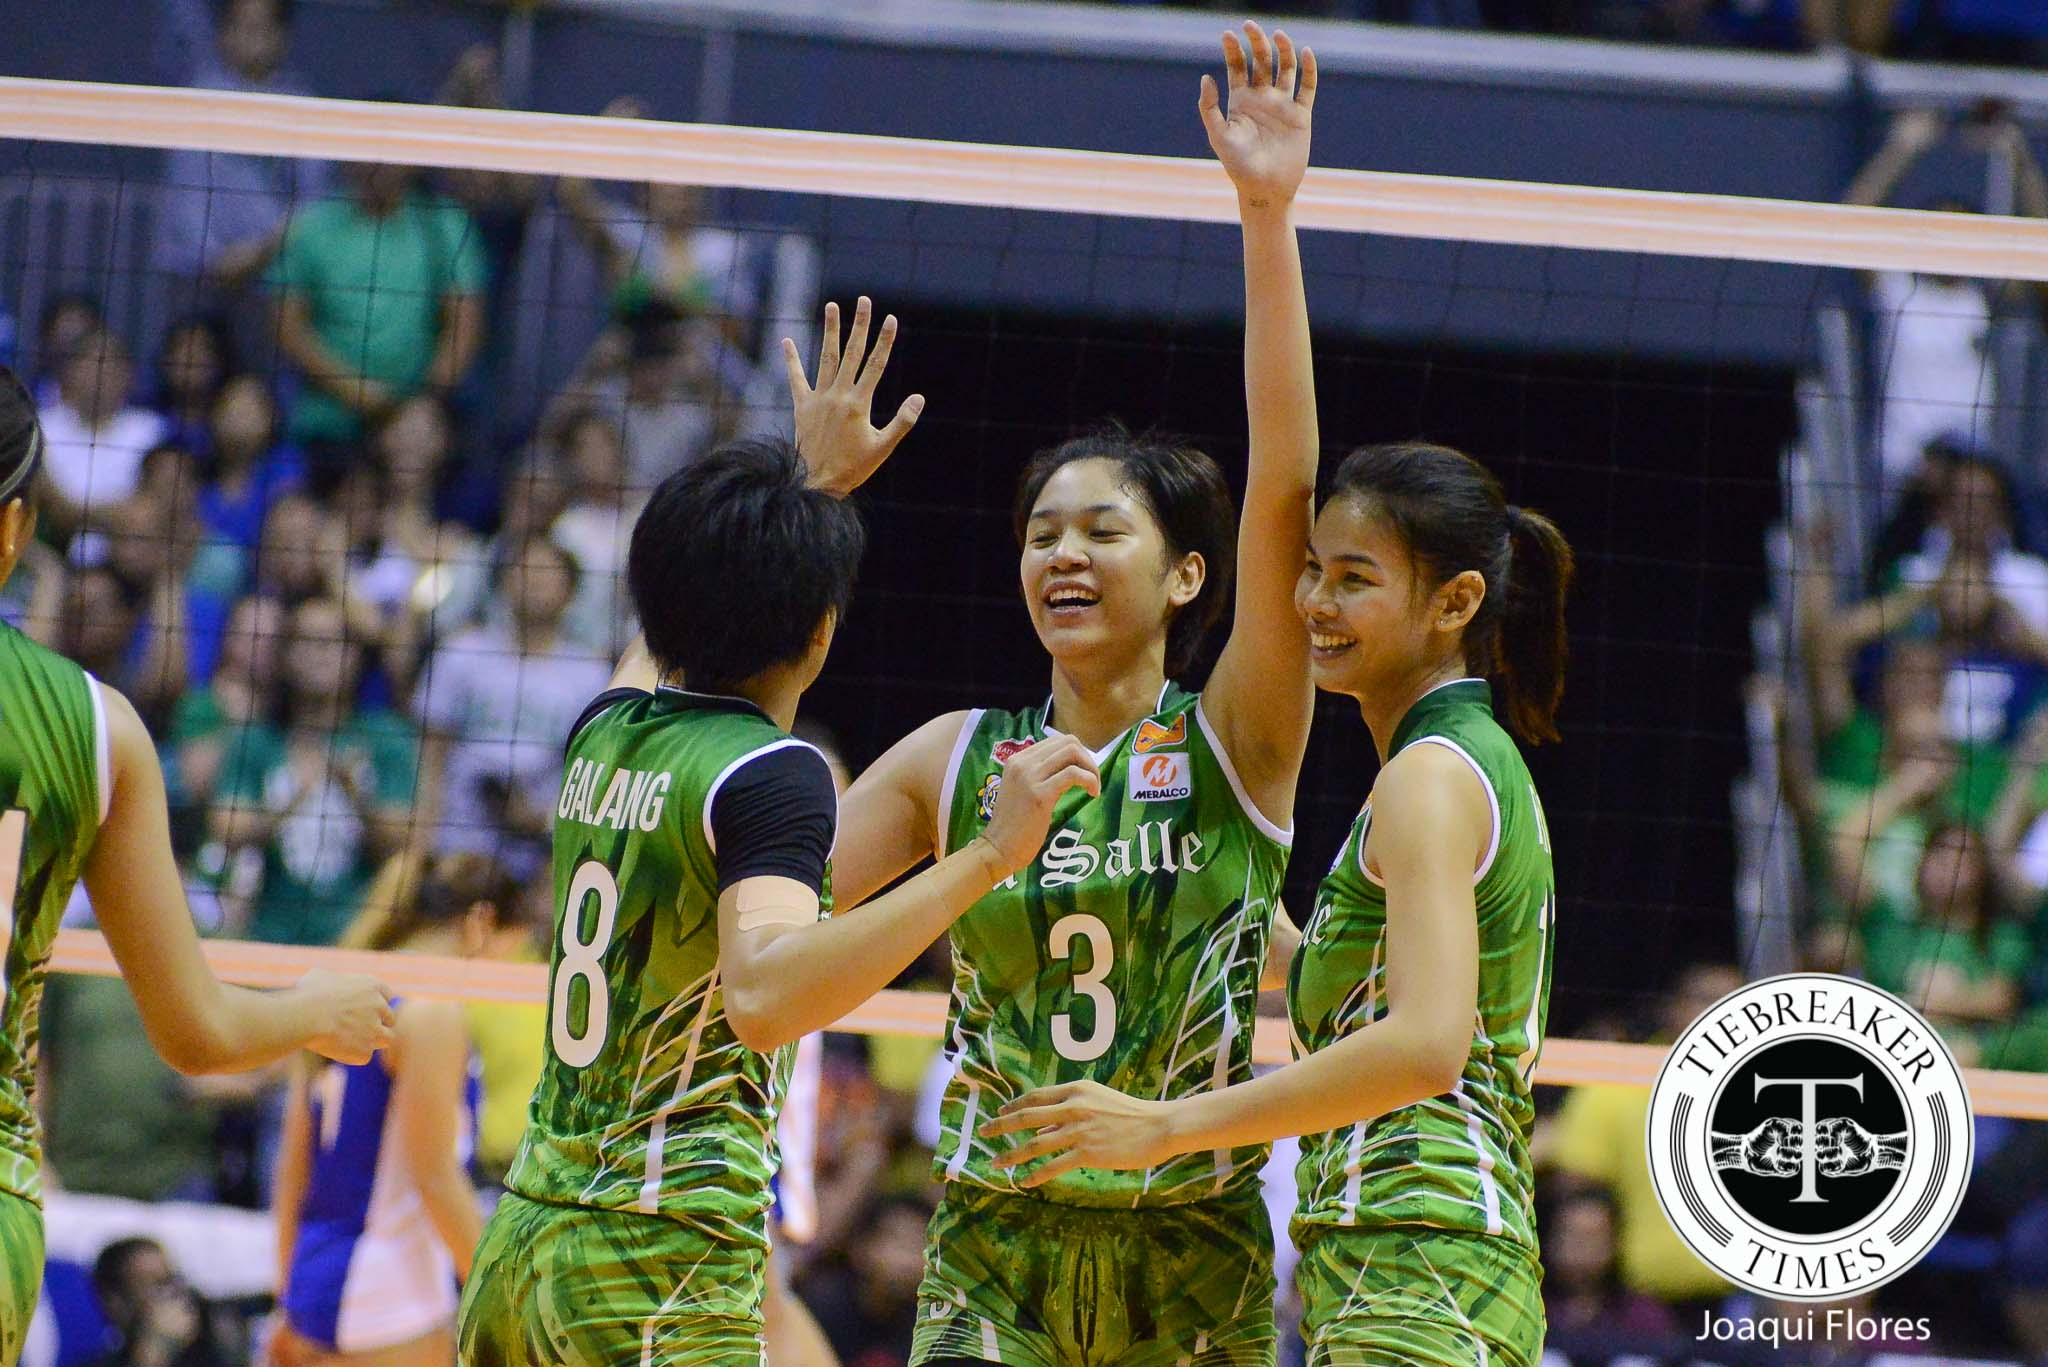 Tiebreaker Times Mika Reyes puts decisive closure to rivalry, UAAP career DLSU News UAAP Volleyball  UAAP Season 78 Women's Volleyball UAAP Season 78 Mika Reyes DLSU Women's Volleyball